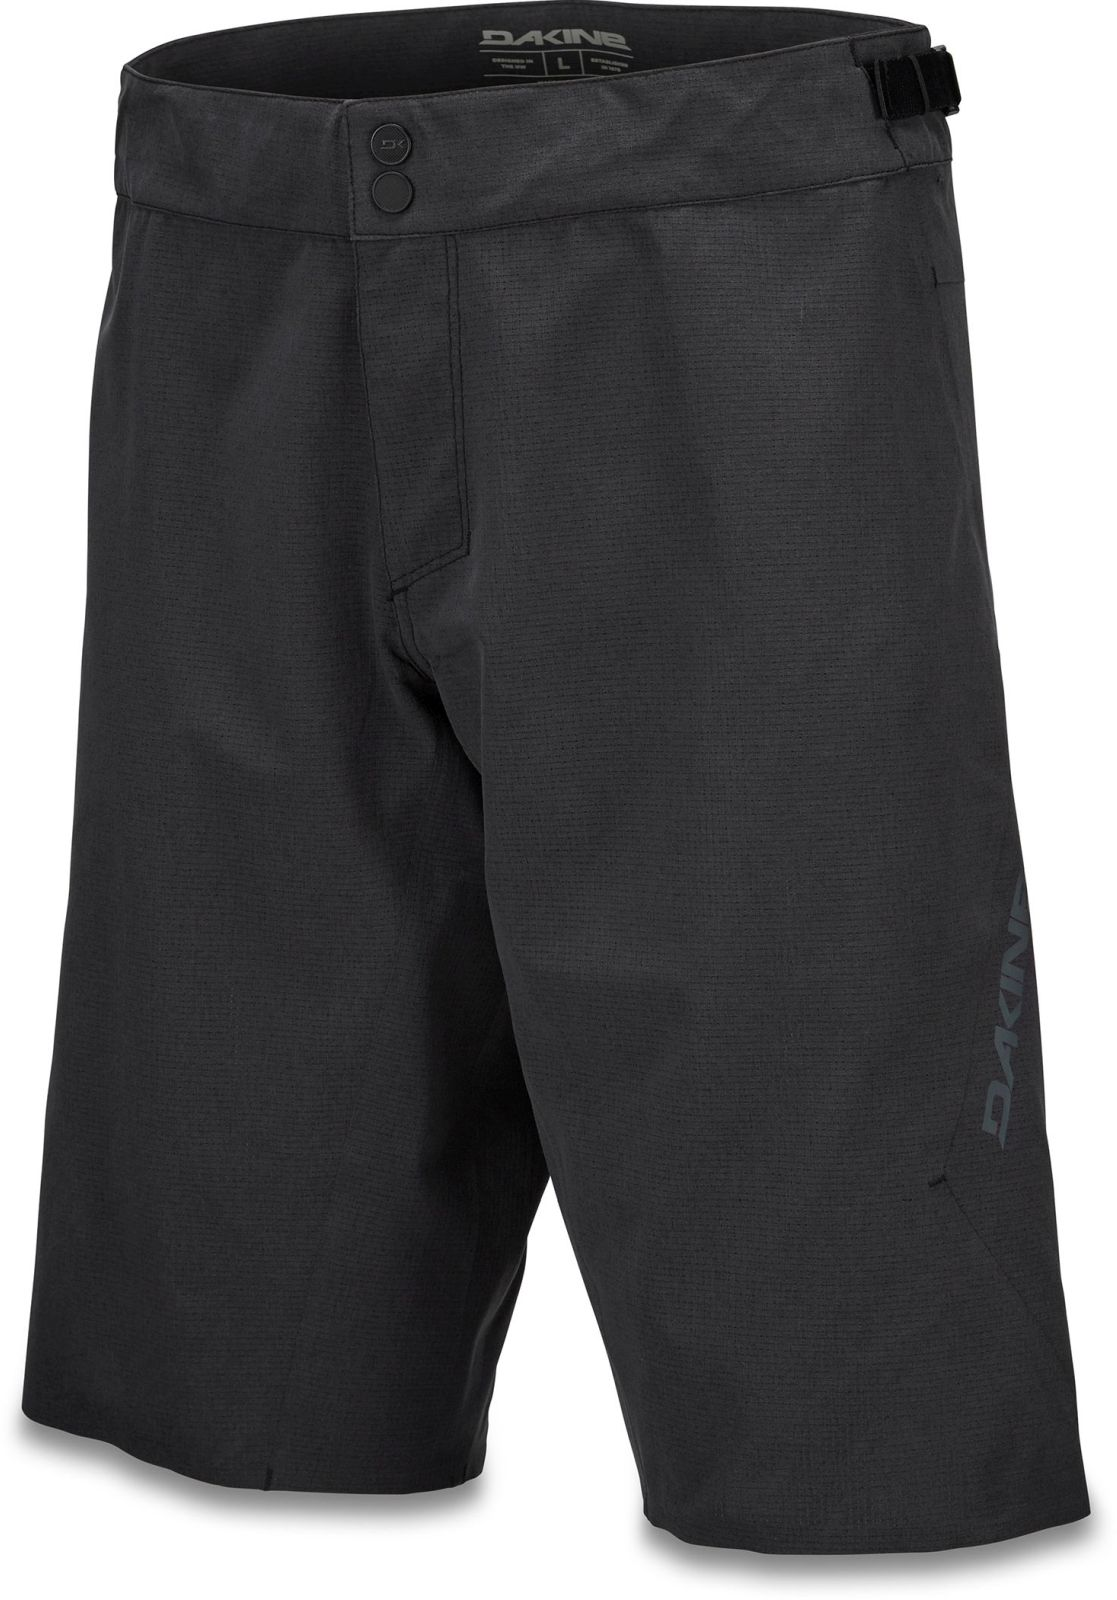 Dakine Boundary Short - black XXL